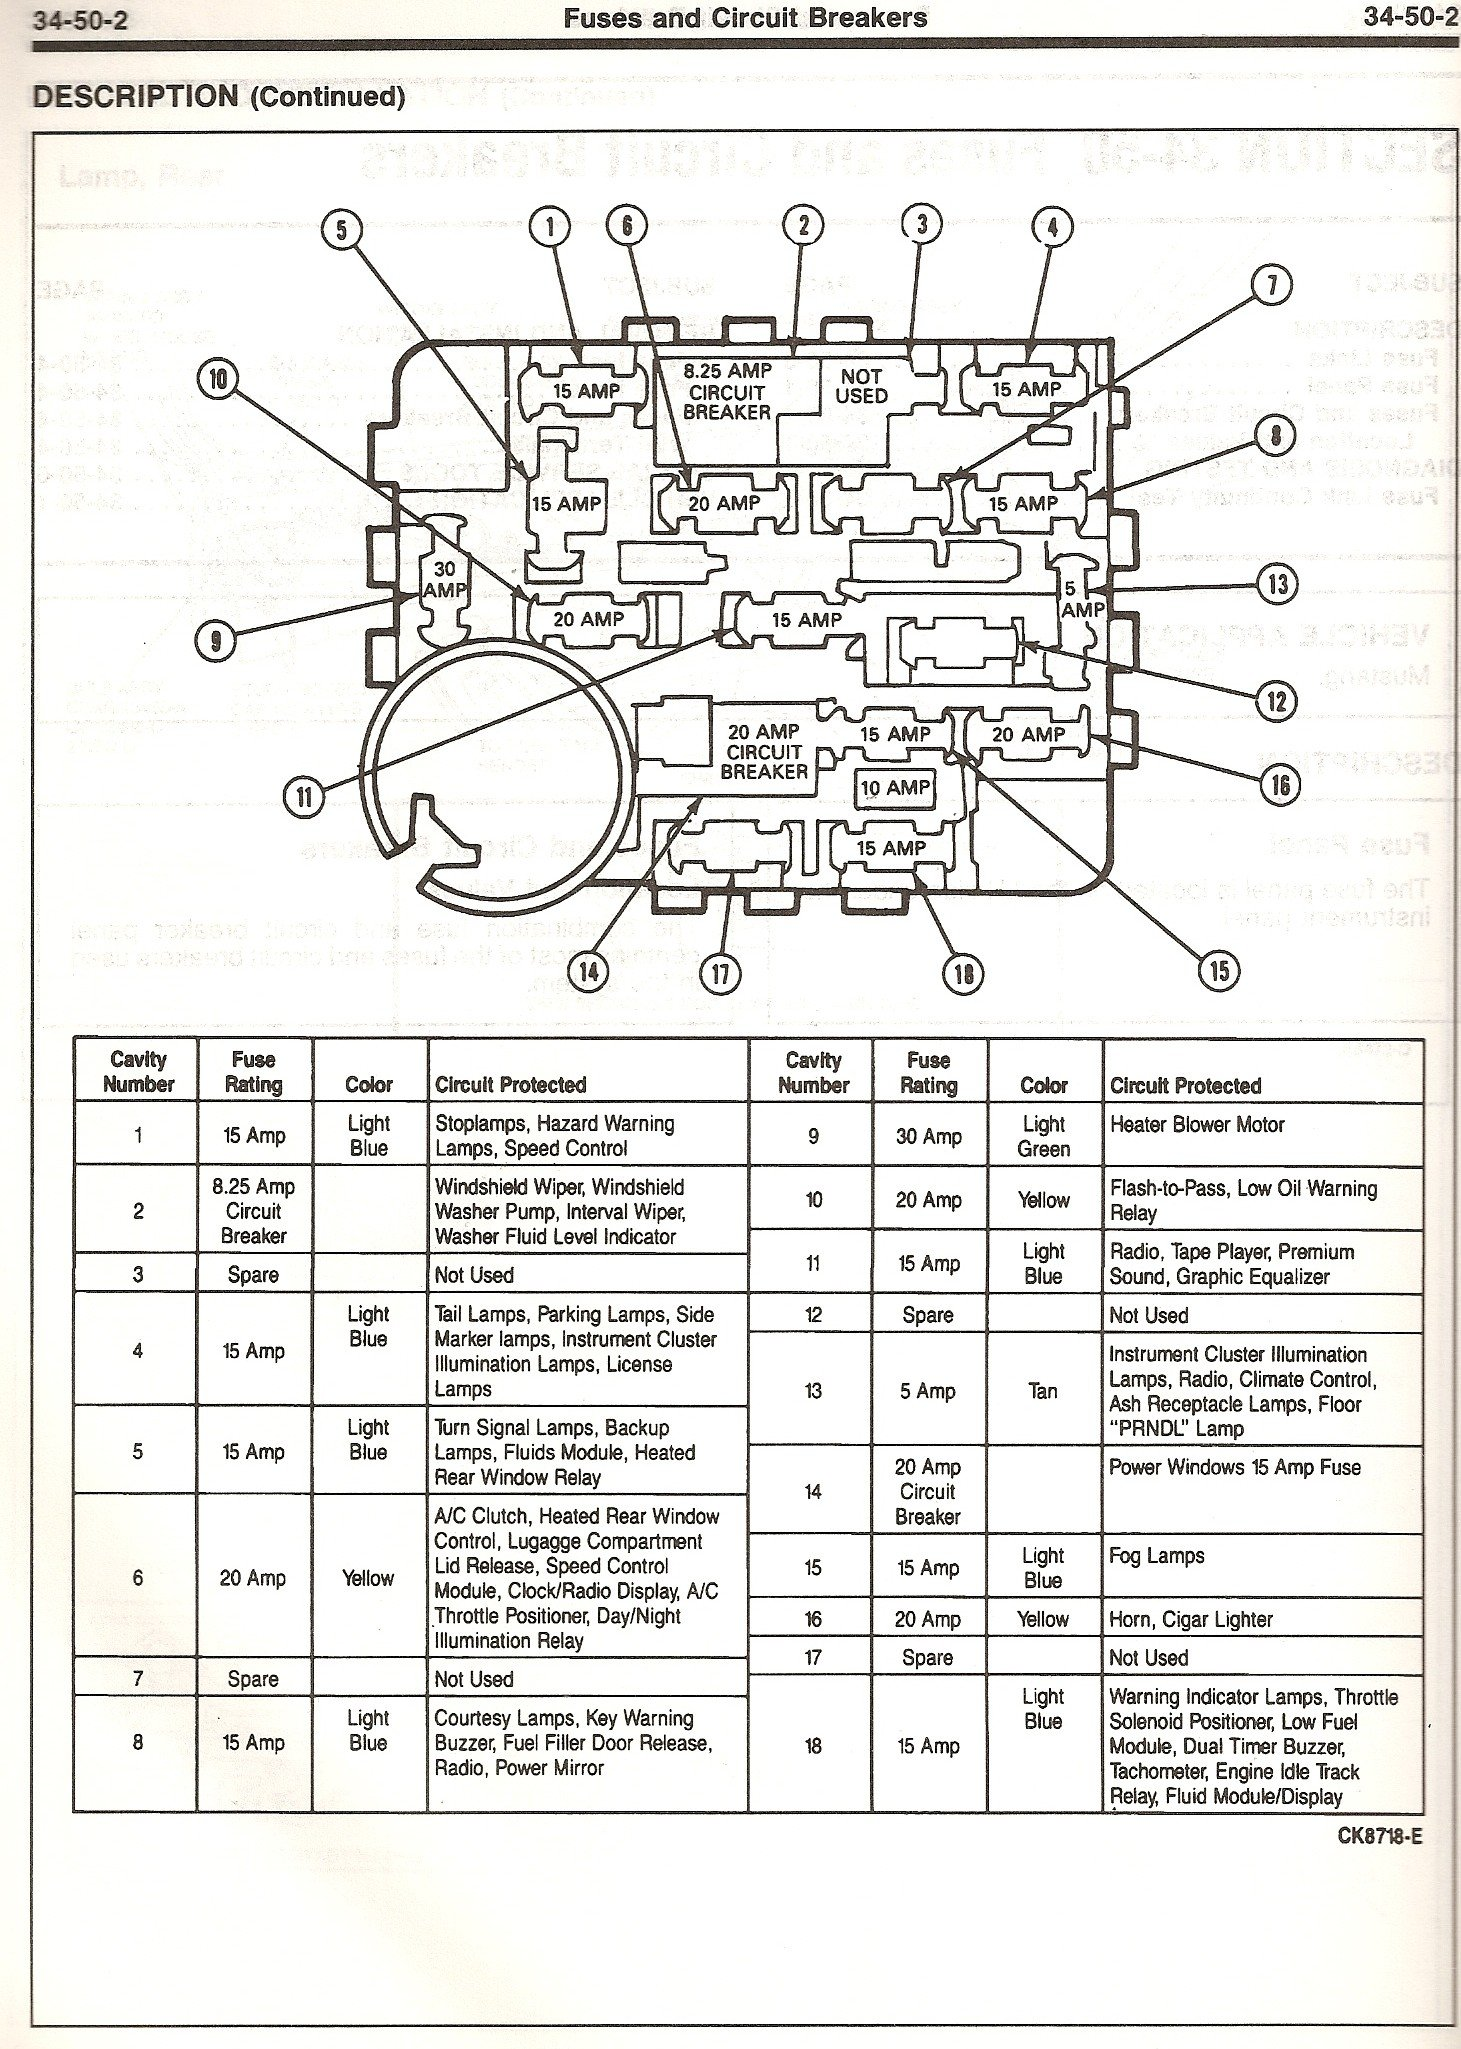 fuse box diagram for 1990 ford mustang gt 5 0